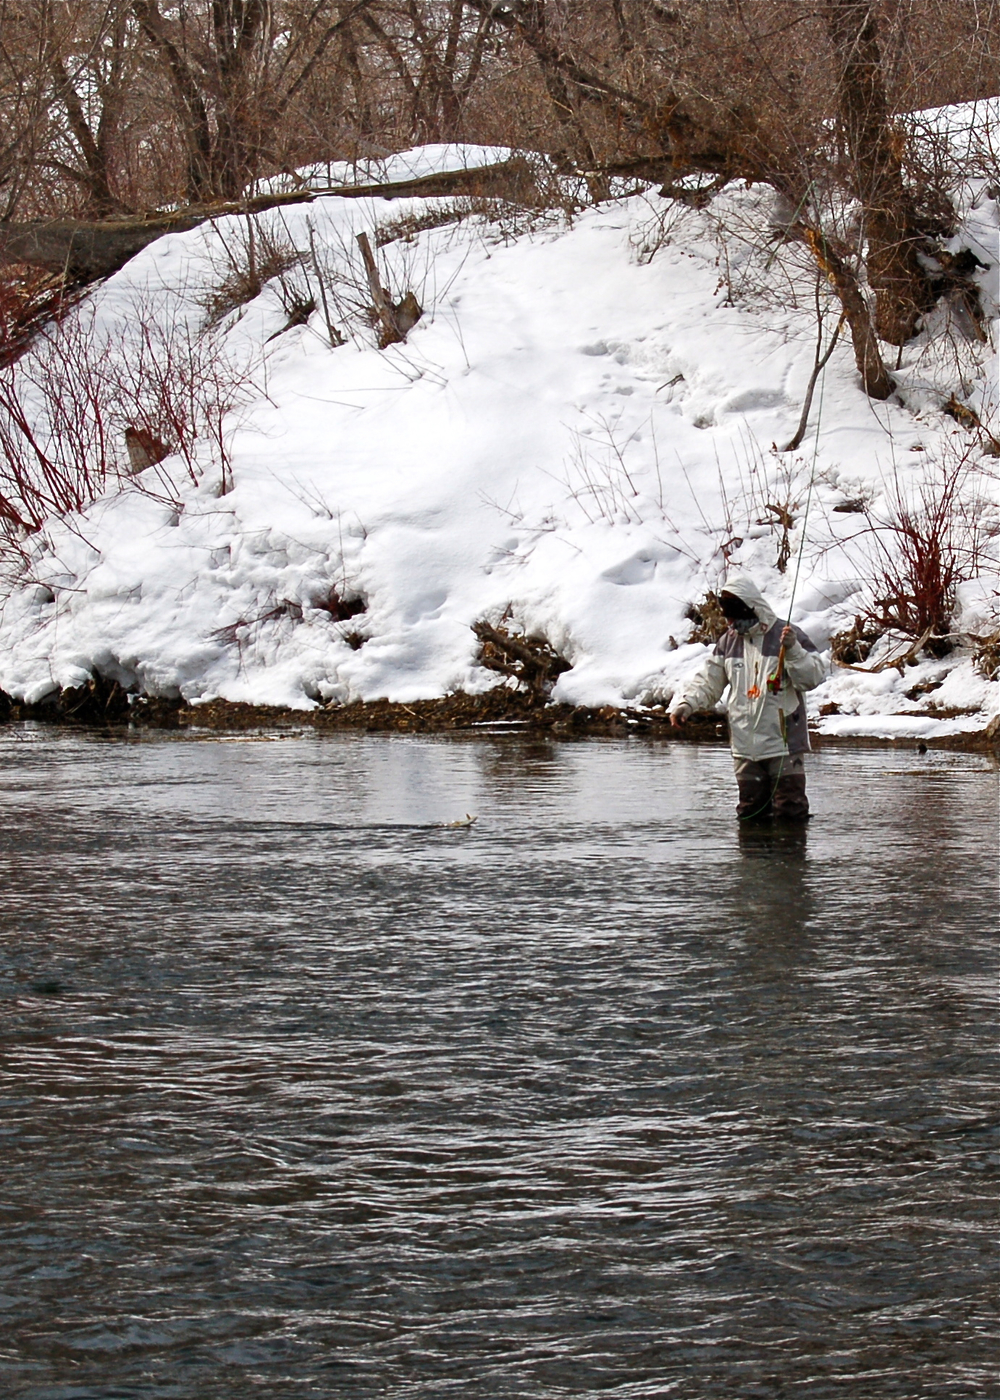 Mike landing a rainbow trout, lower Provo River